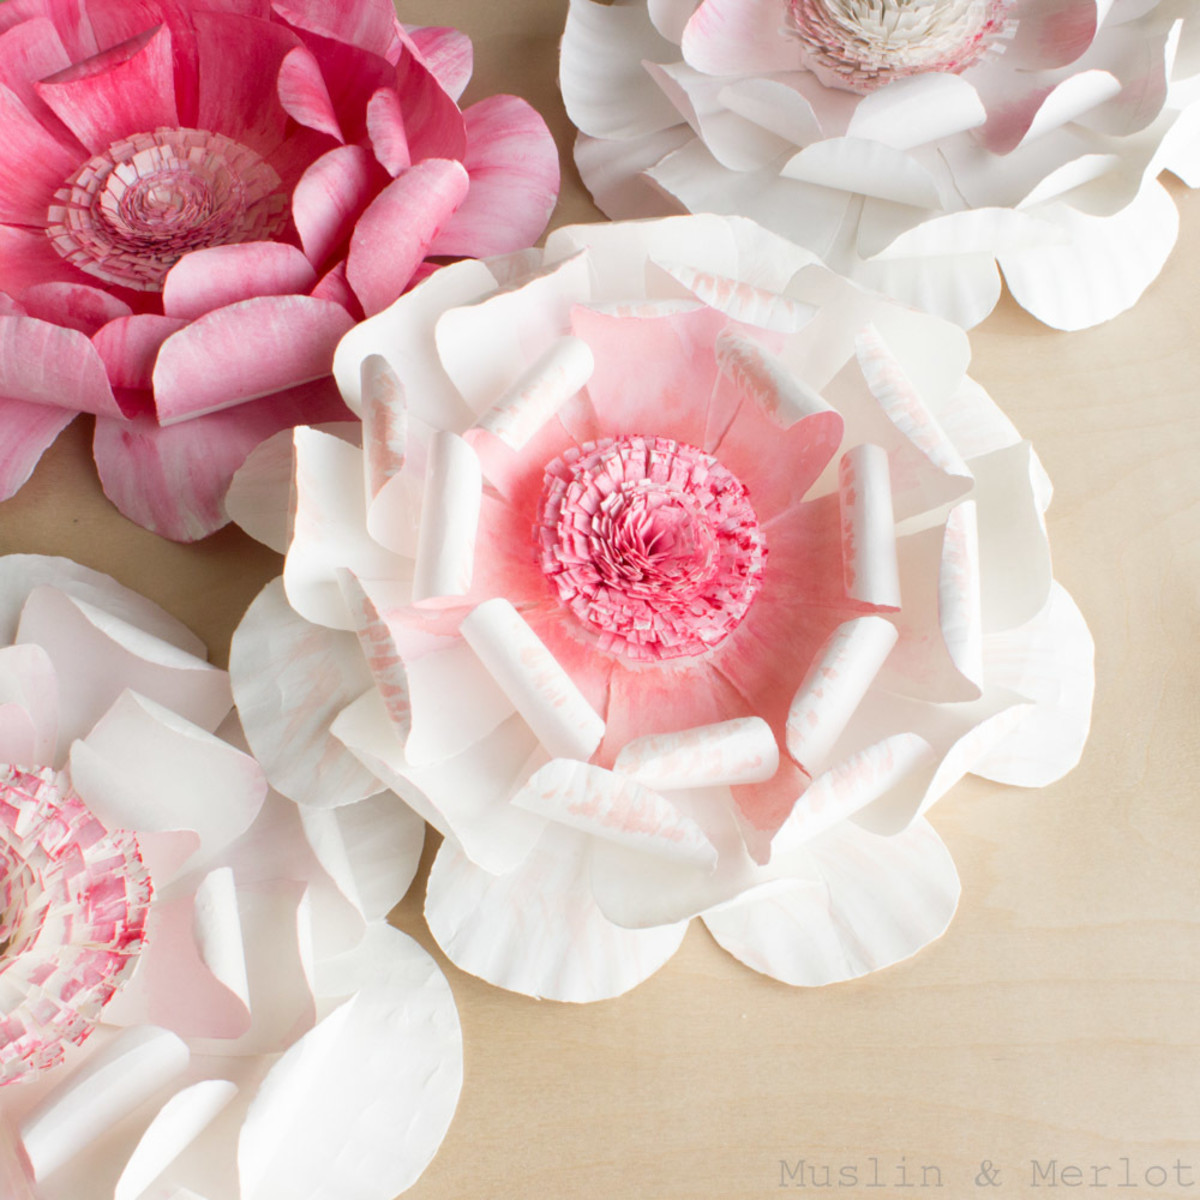 Learn to make flowers from paper plates, who knew?